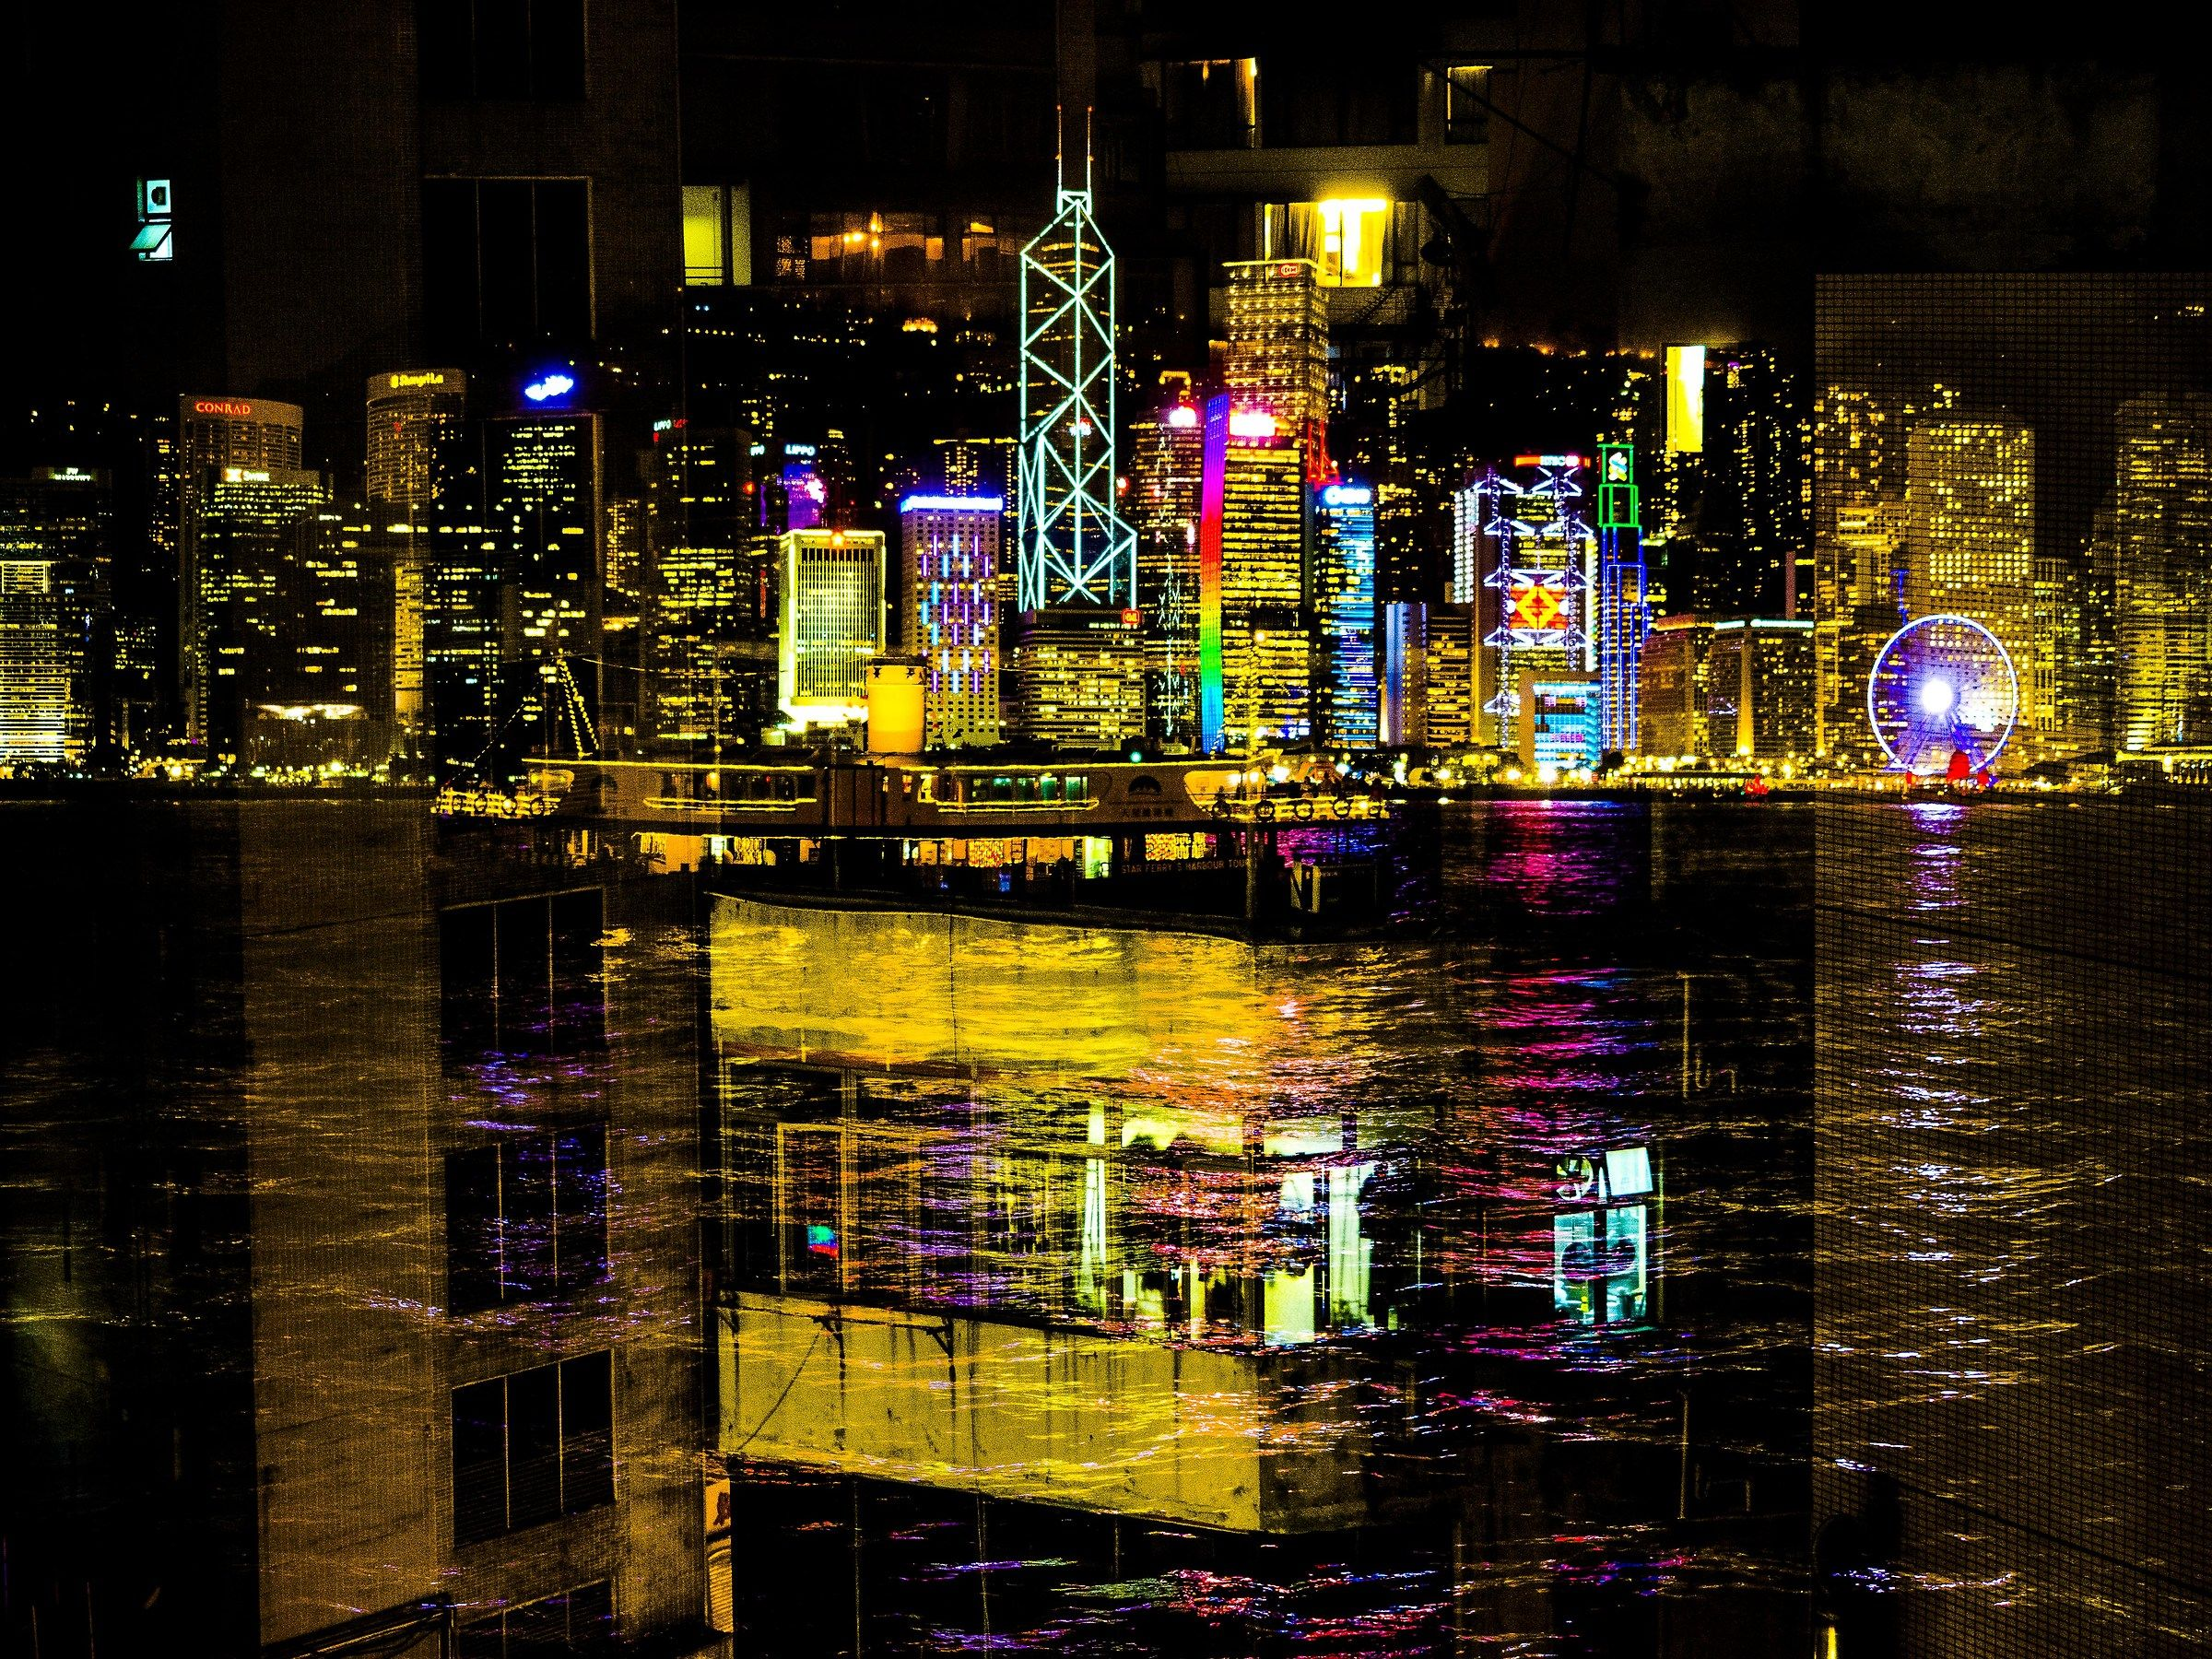 Hong Kong over and under the water 3...